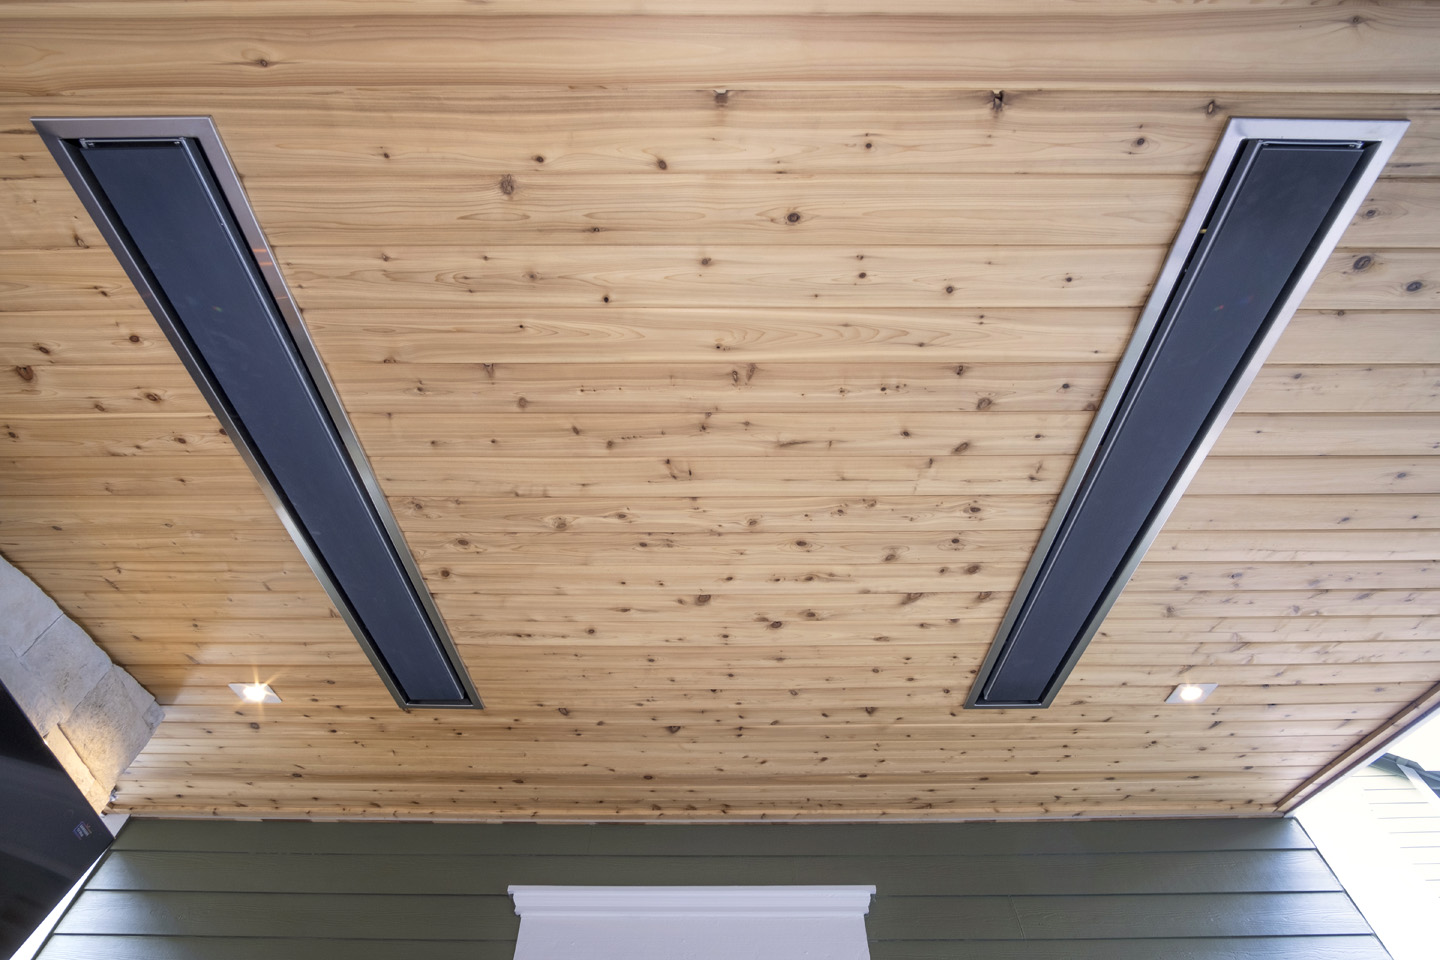 ceiling heeaters in Outdoor Living Room